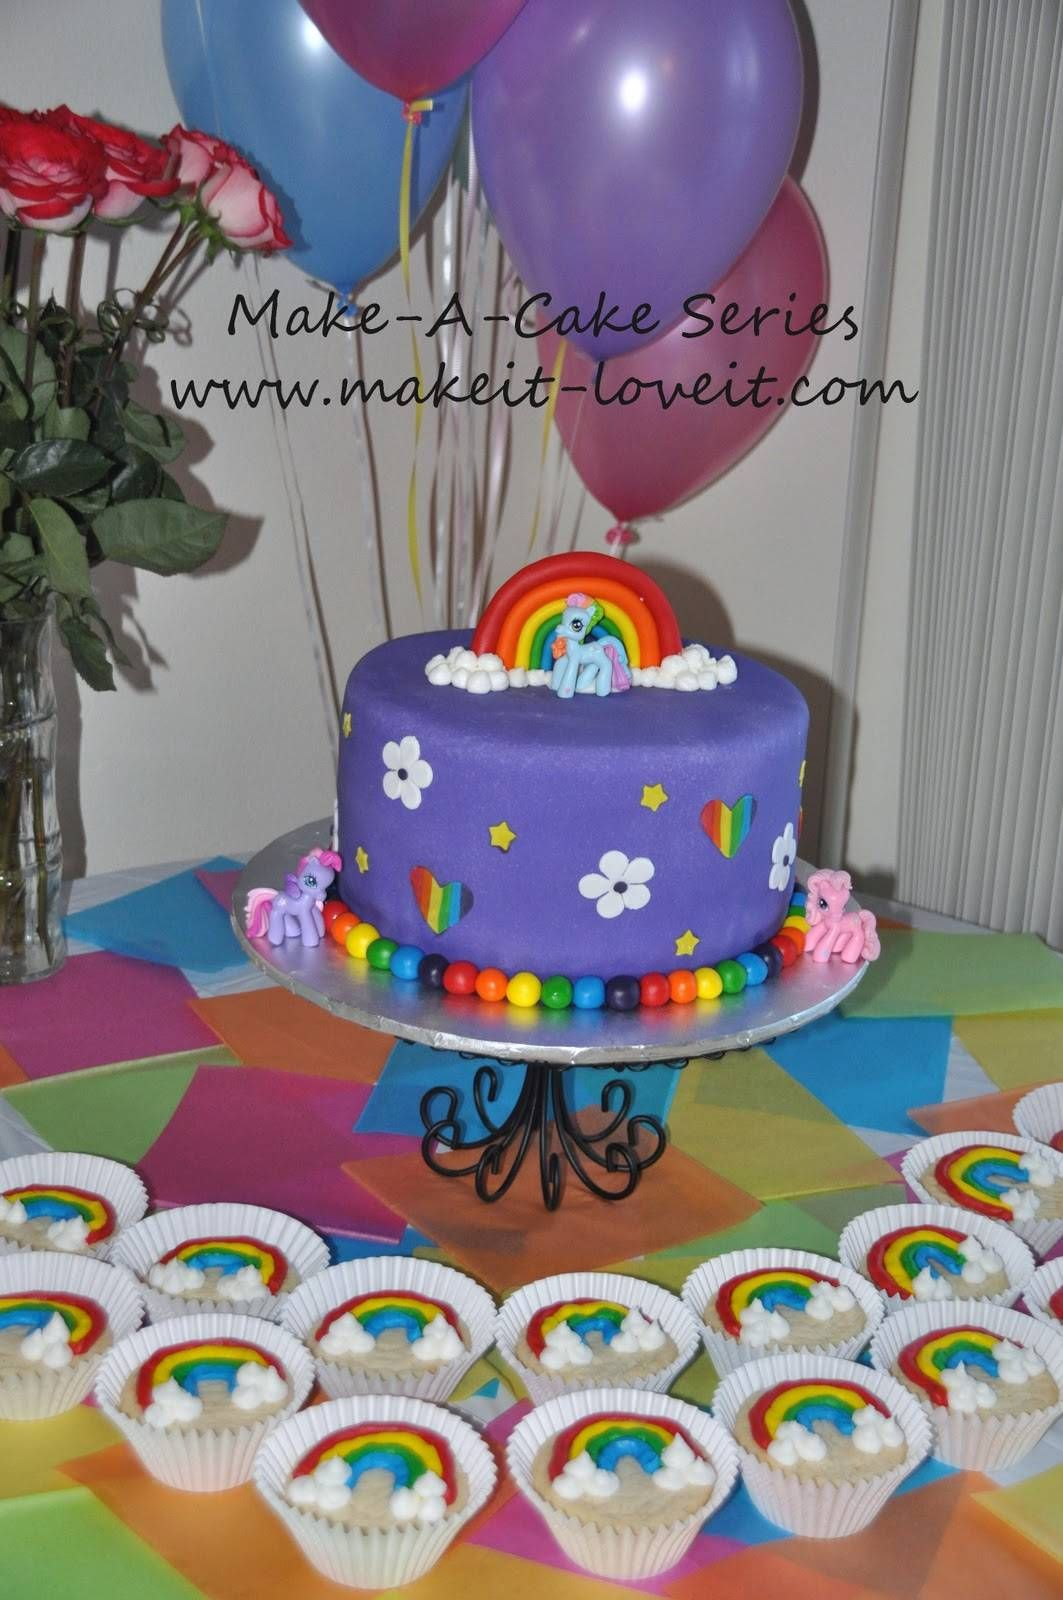 Groovy My Little Pony Birthday Cakes At Walmart Terms My Little Pony Personalised Birthday Cards Paralily Jamesorg